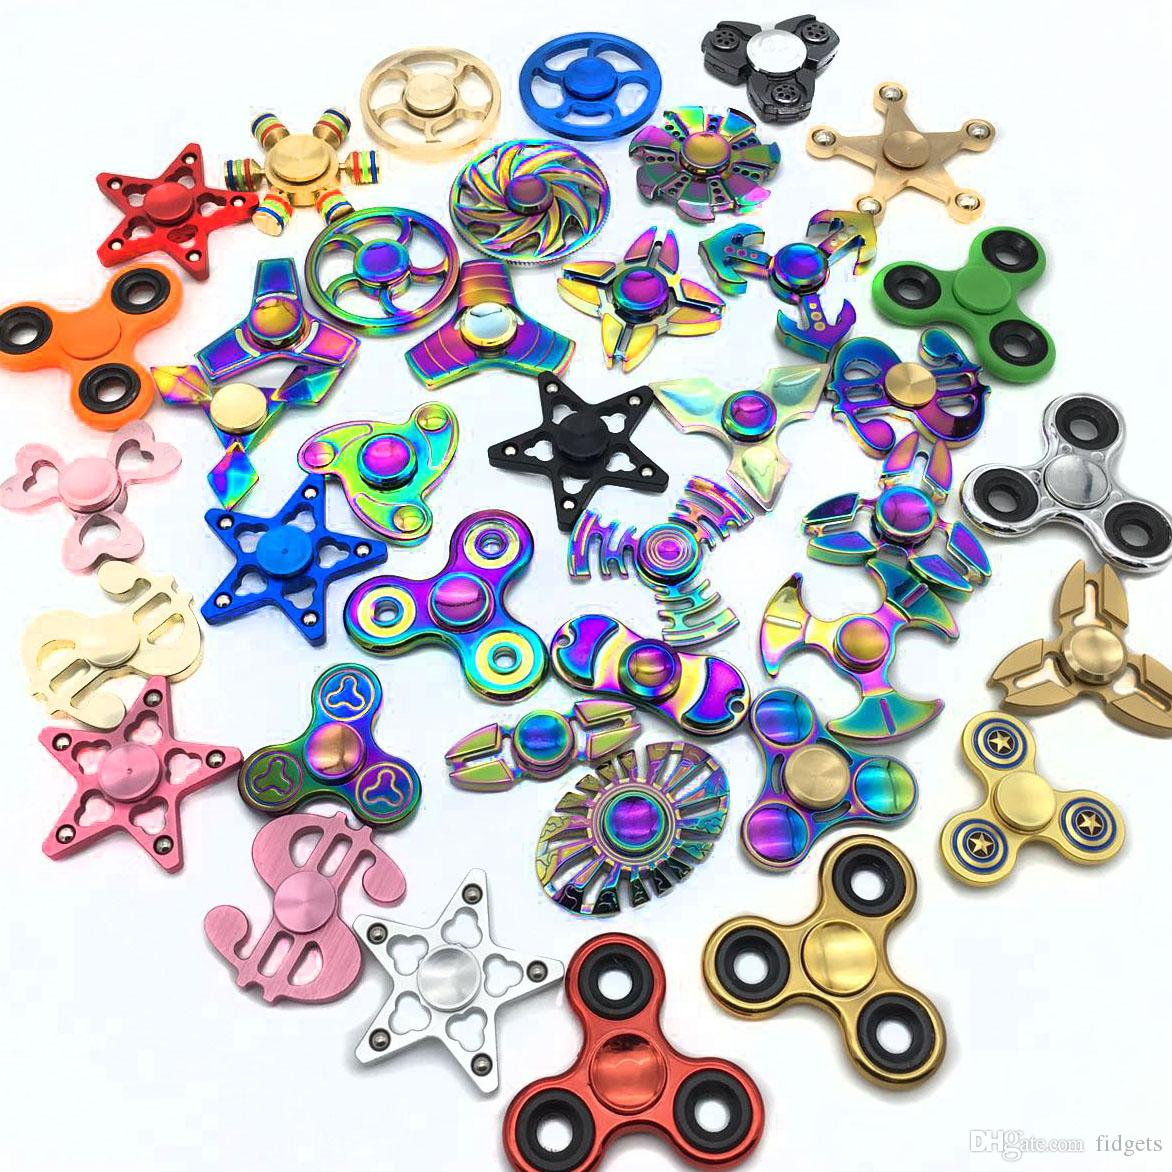 Rainbow Hand Spinner Fidget Finger Alloy:Shipped/&Delivered In 2days From USA